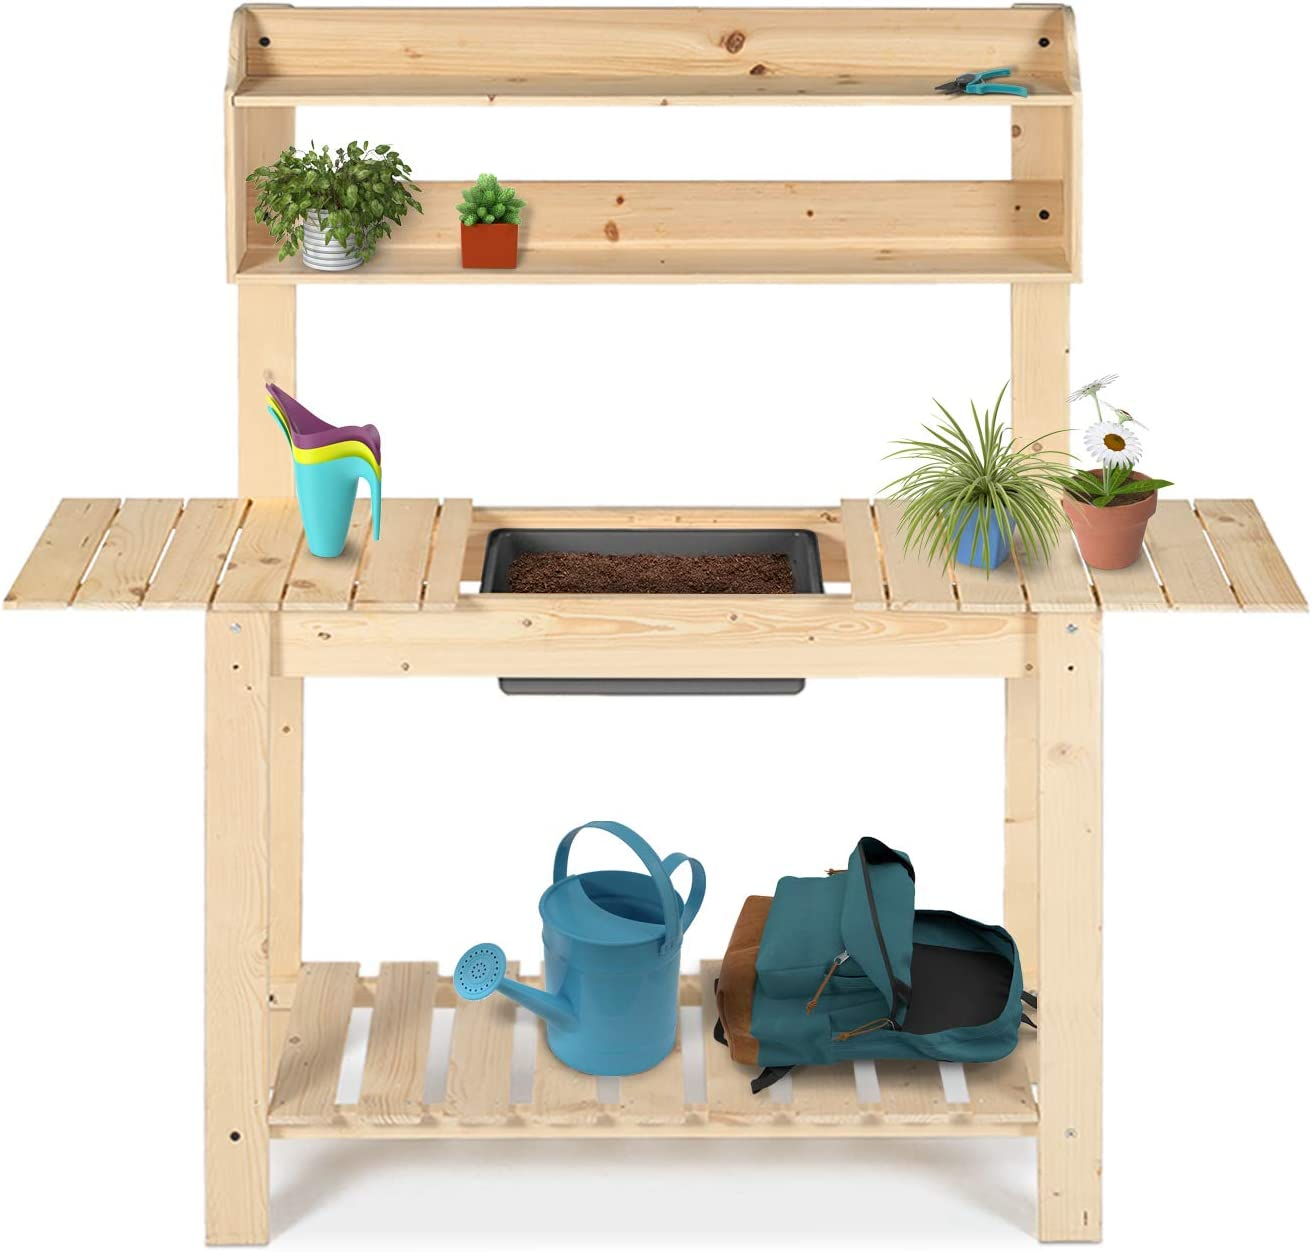 LYNSLIM Natural Wood Garden Potting Bombing Seasonal Wrap Introduction free shipping Bench Table - Outdoor